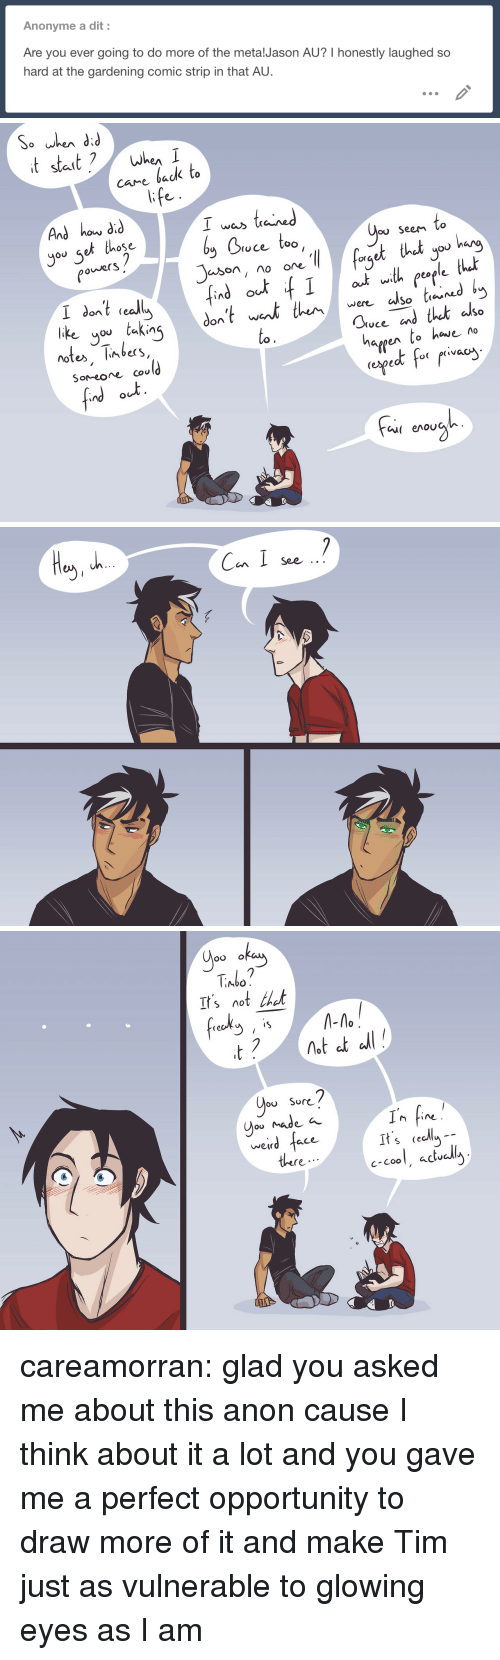 Comic Strip: Anonyme a dit:  Are you ever going to do more of the metalJason AU? I honestly laughed so  hard at the gardening comic strip in that AU.   And how did  you set those  I was taied  Doce too  ou SeeM Co  owerS  org  So tieu  like you taking  notes, limbers,  SoMeoe cou  to.  hargen to have no  (ngeよf-( r.vac  Cu( enoU   Can I soe  See   Abo  It'snot thet  frech -  ou Sor<  weird  ace  It s cecly  c-Cool, aclu  there careamorran:  glad you asked me about this anon cause I think about it a lot and you gave me a perfect opportunity to draw more of it and makeTim just as vulnerable to glowing eyes as I am